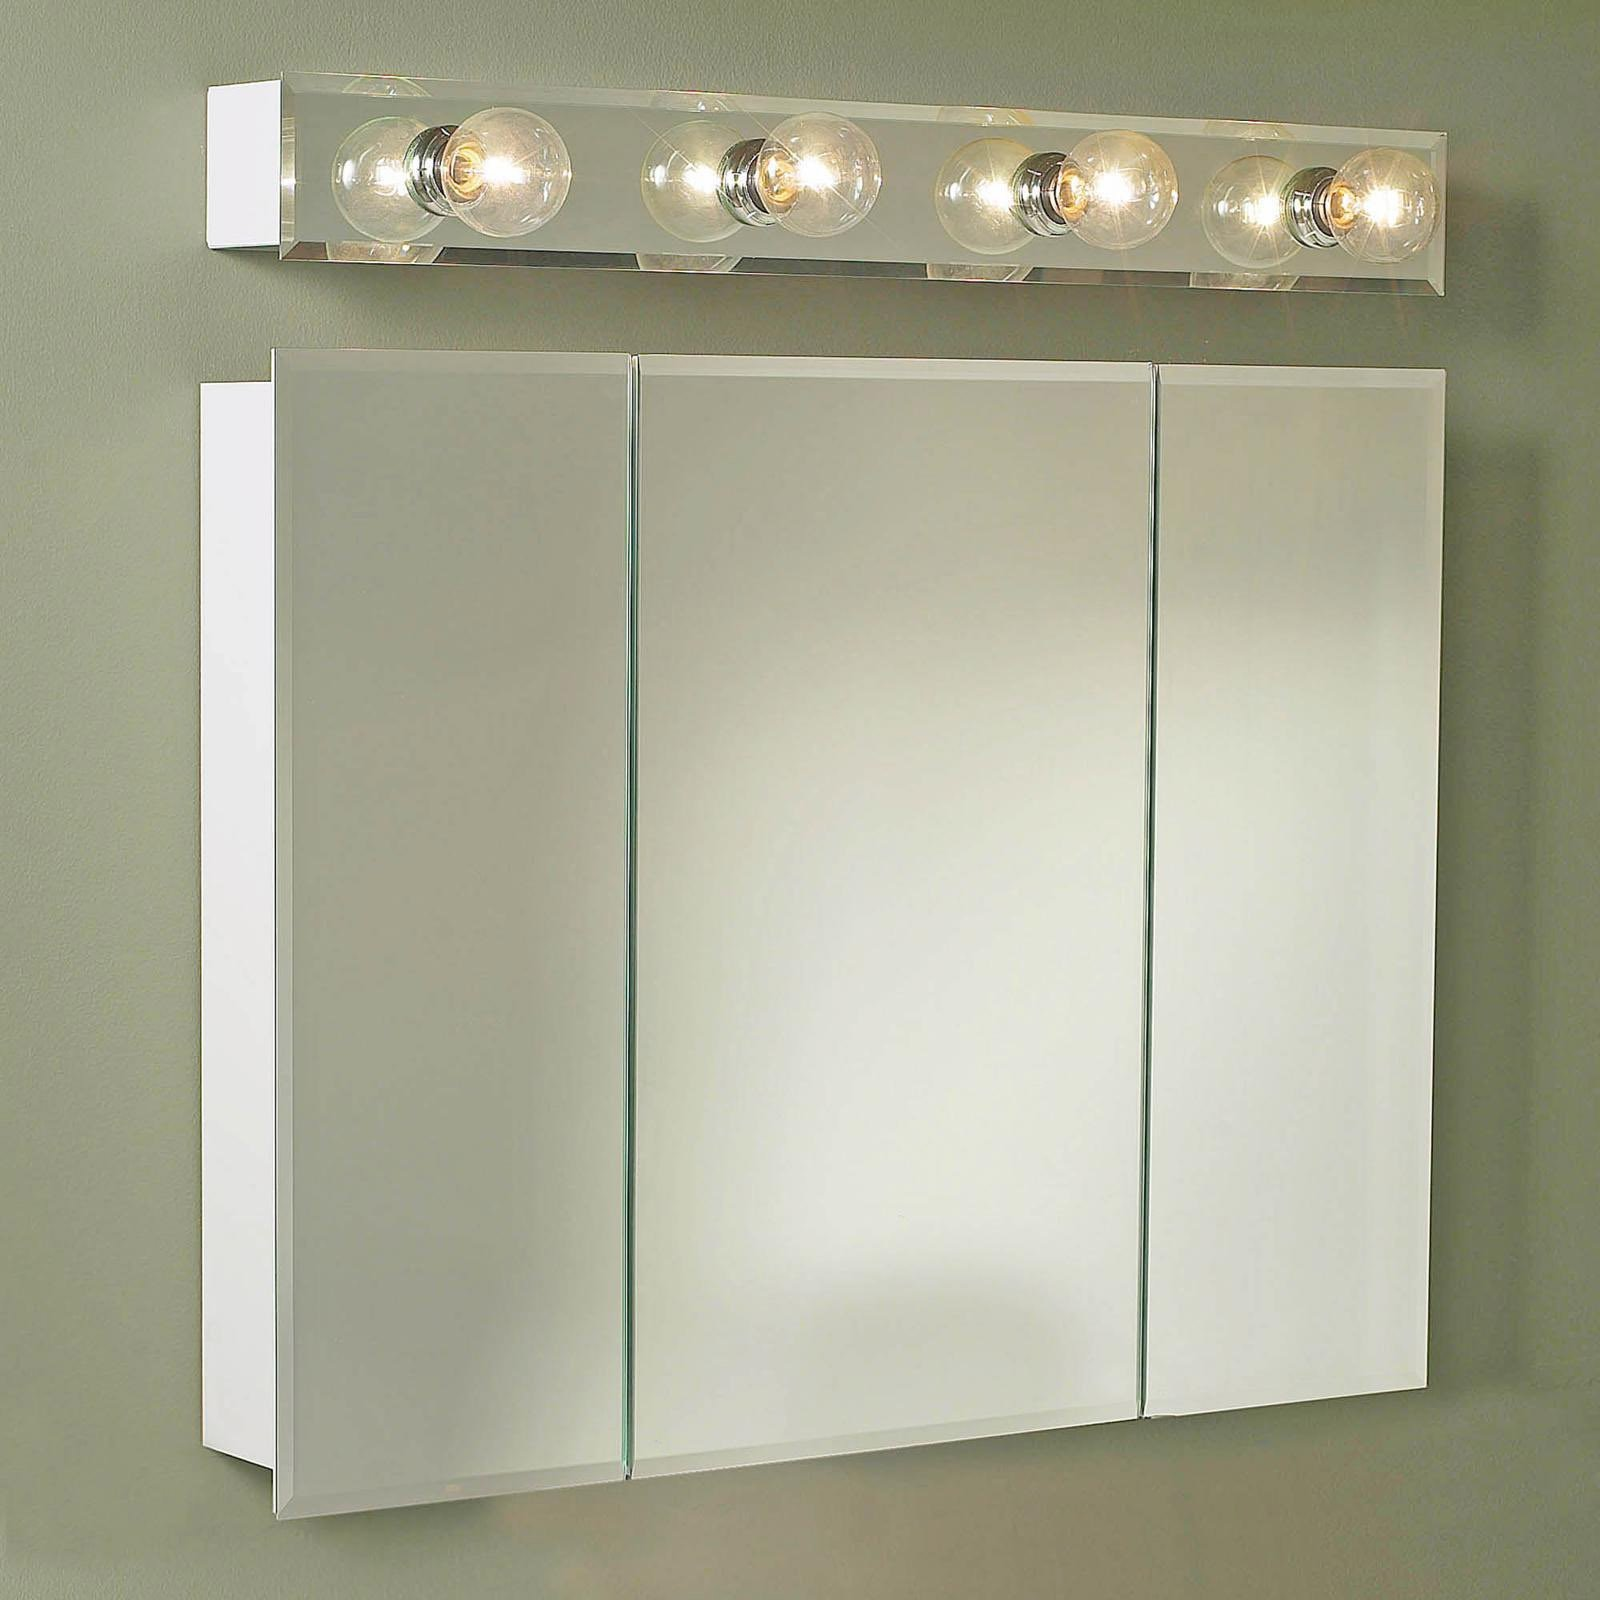 medicine cabinet with mirror and lights new bathroom medicine cabinets with lights ideas RVJKUIX